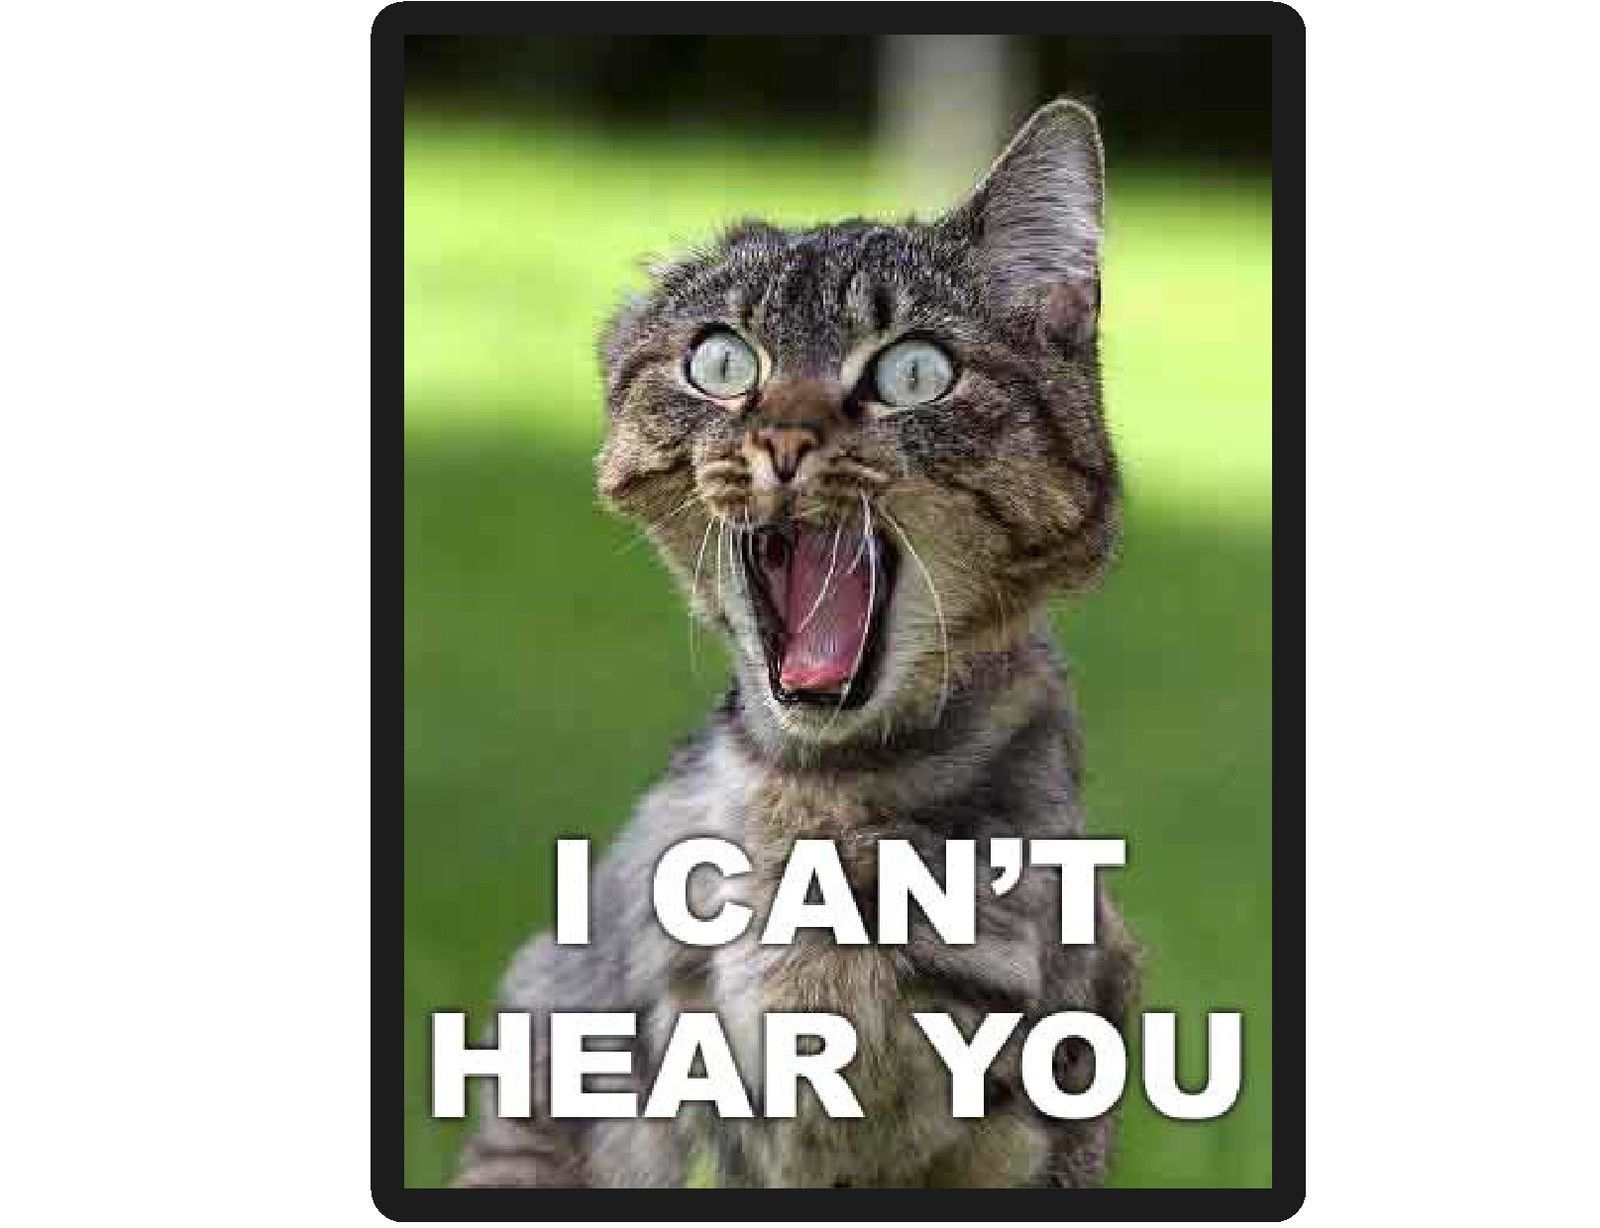 Funny Cat I Can T Hear You Refrigerator File Cabinet Magnet Funny Happy Birthday Pictures Funny Happy Birthday Meme Cat Birthday Memes